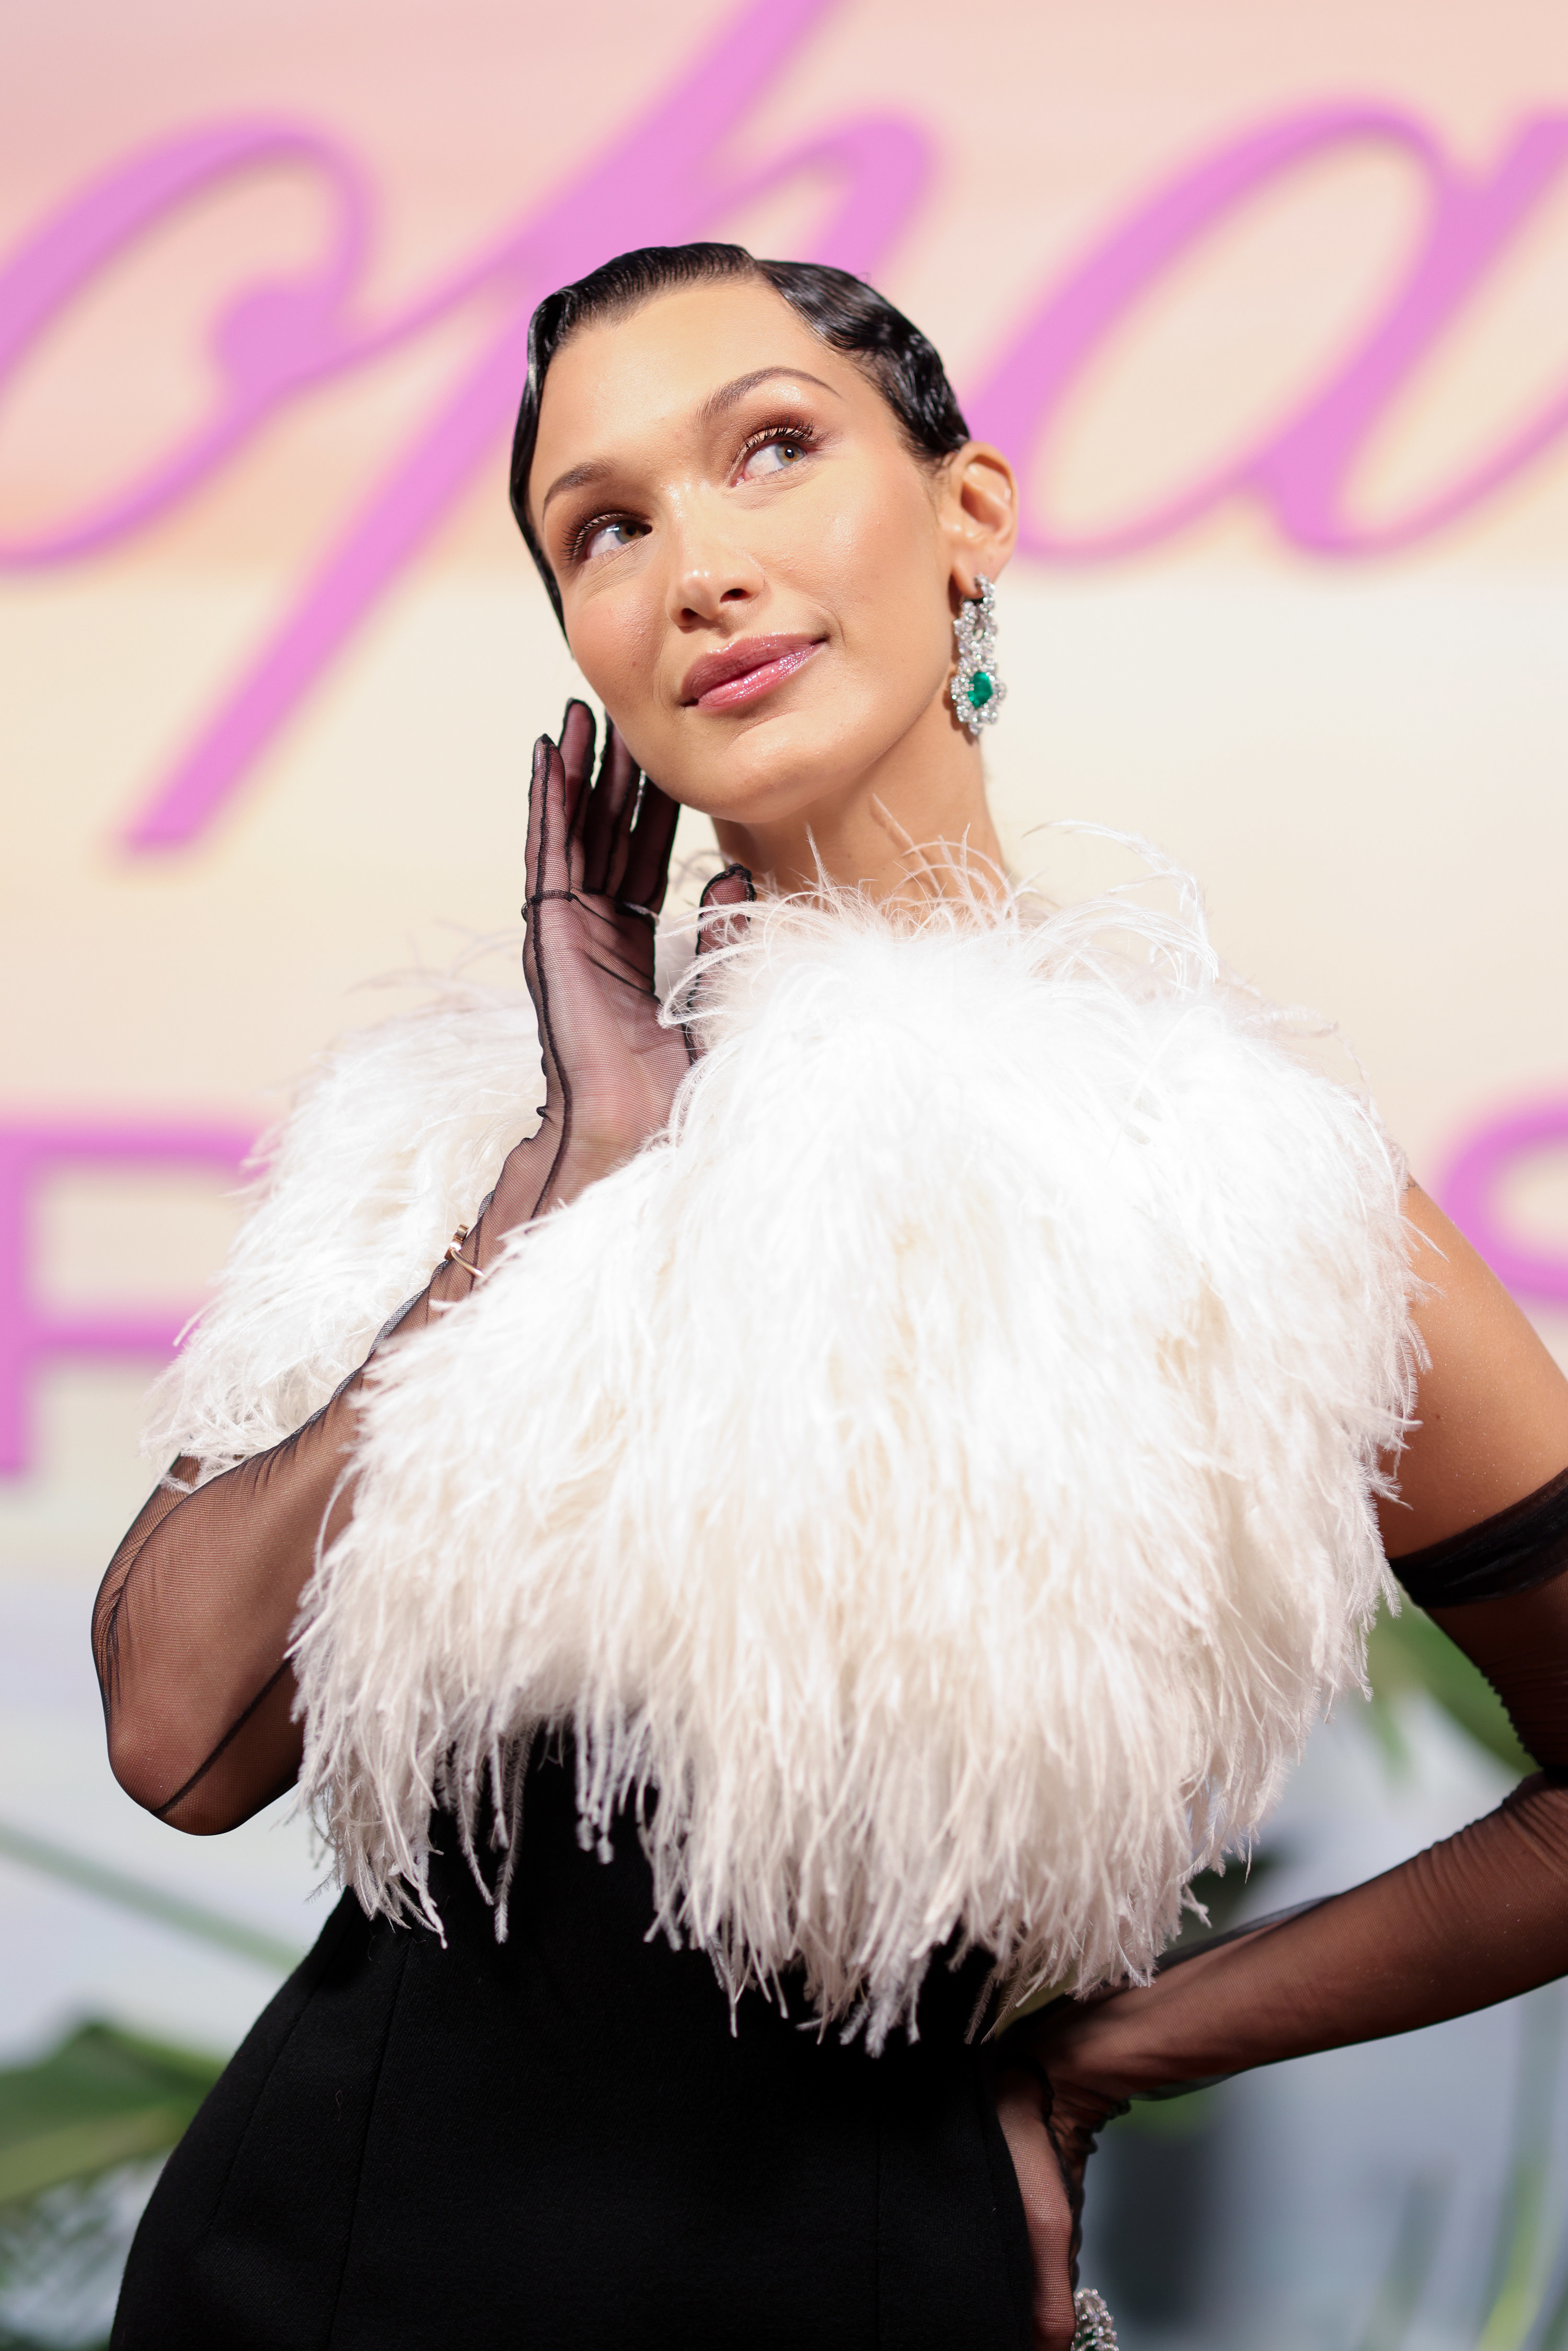 Bella Hadid is pictured at the Cannes Film Festival in 2021